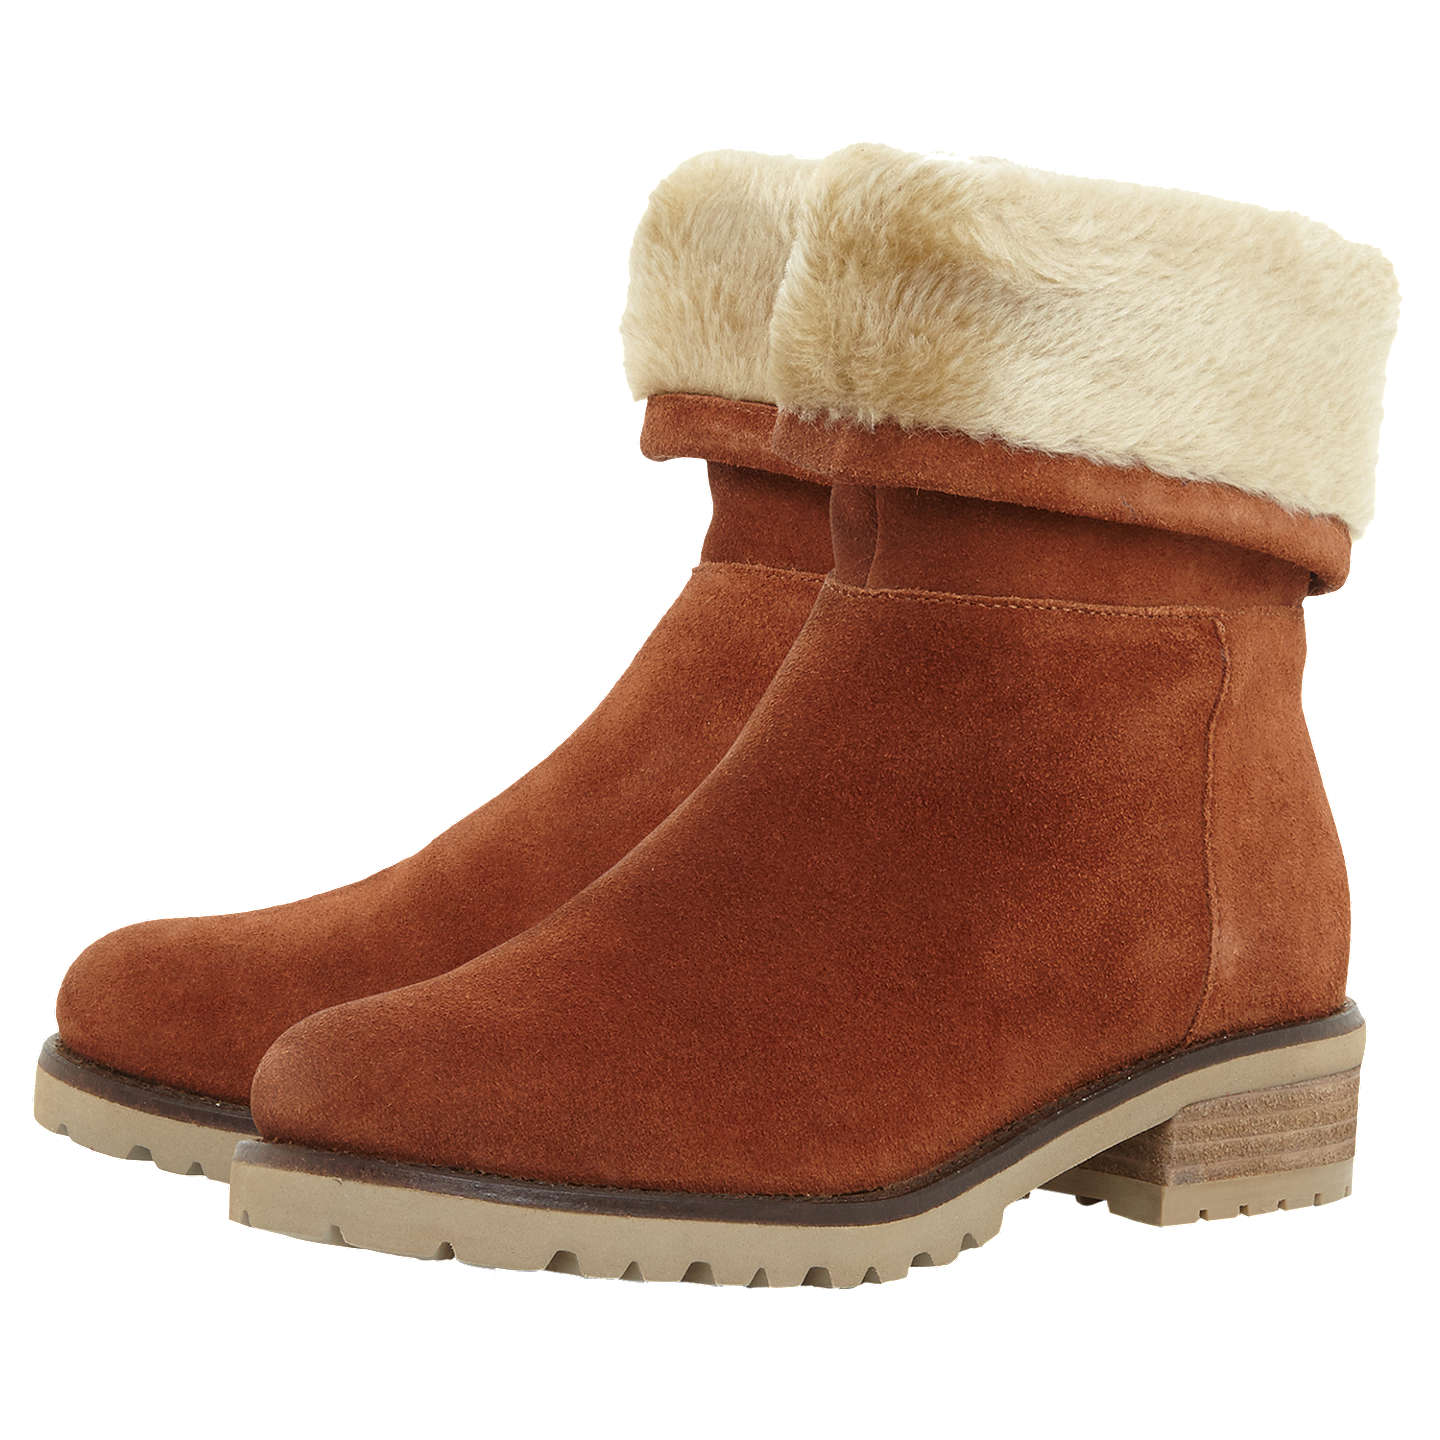 Steve Madden Driller Faux Fur Cuff Ankle Boots , Suede